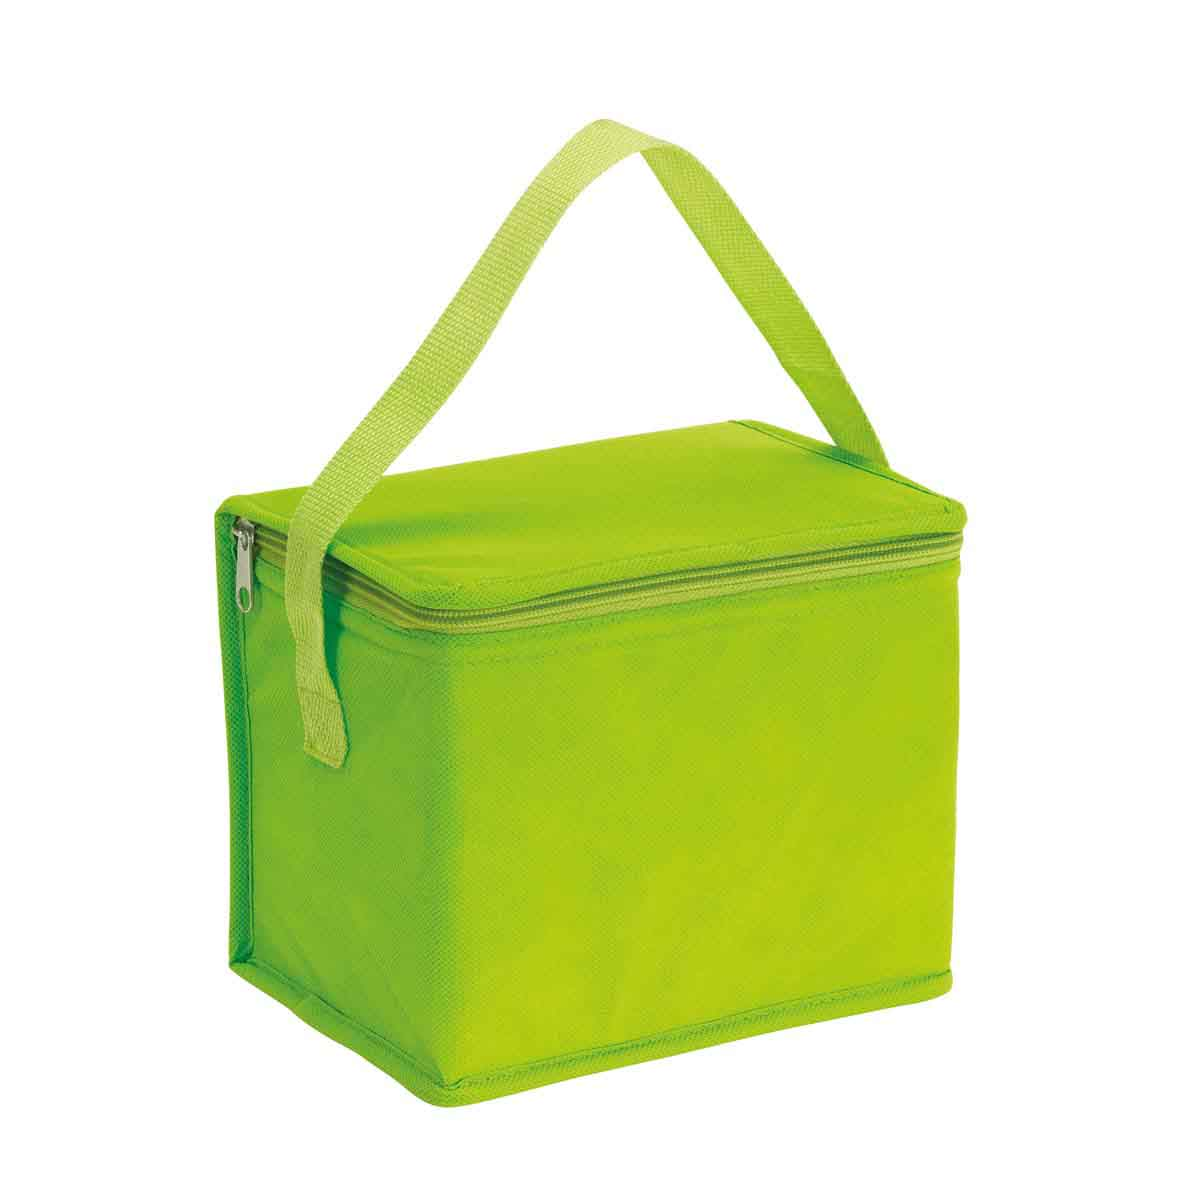 Cooler bag 'Celsius': with insulated zip pocket and carrying handle. - Light Green ins-0801134